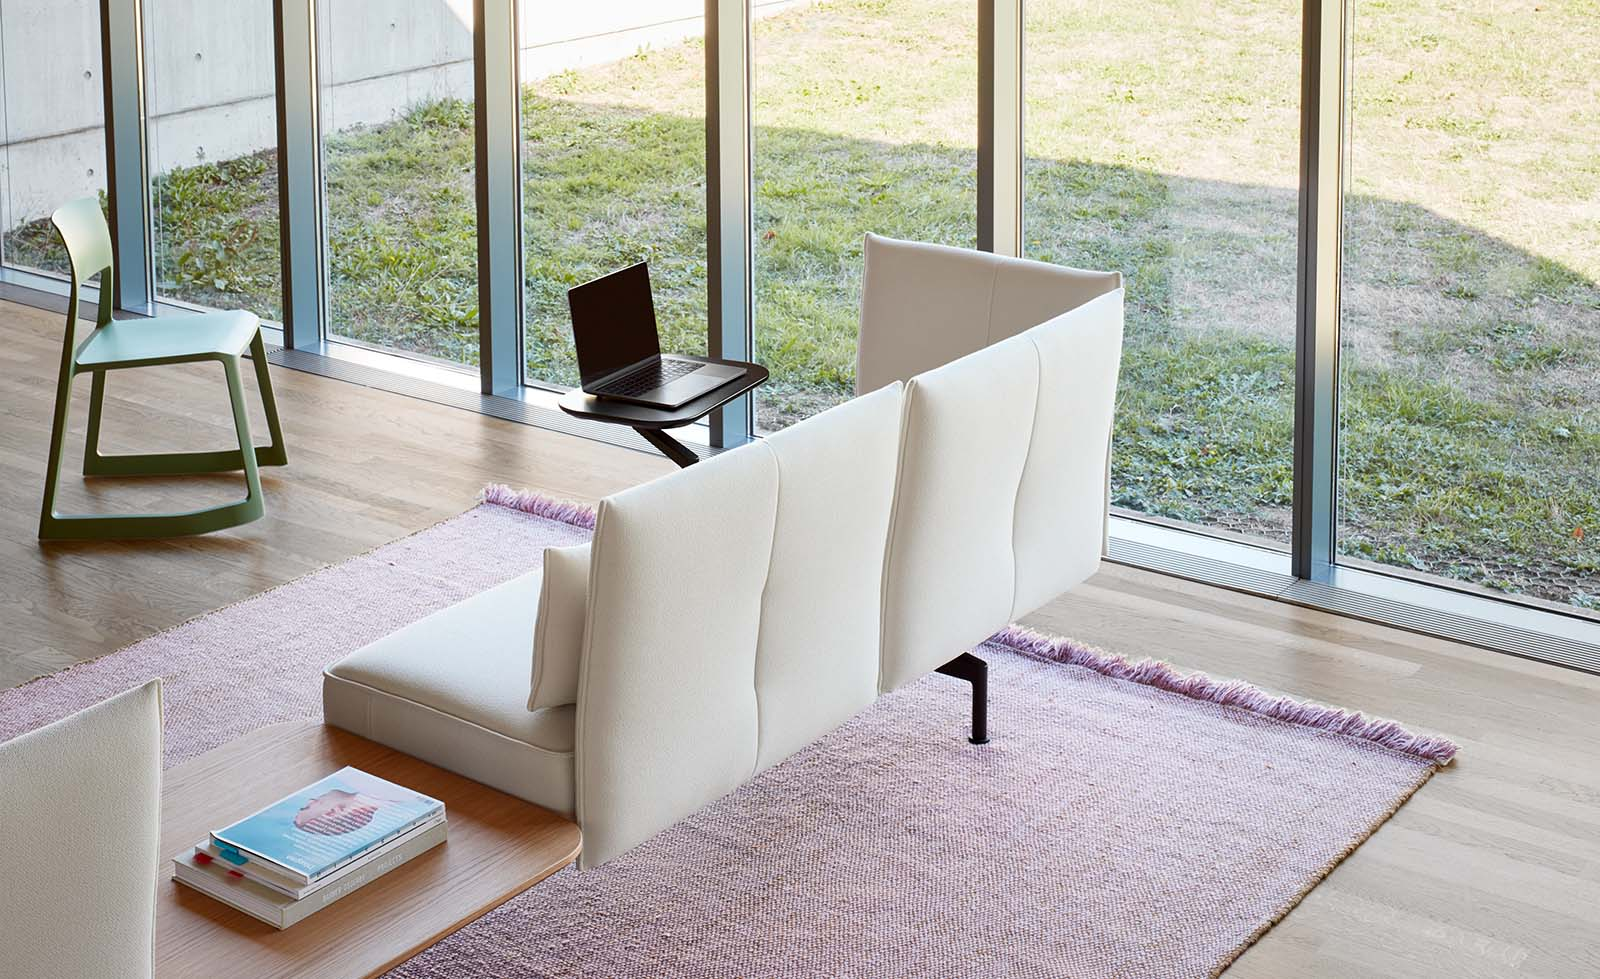 Think Furniture - Hybrid Office Design - Vitra Softwork Seating Collection